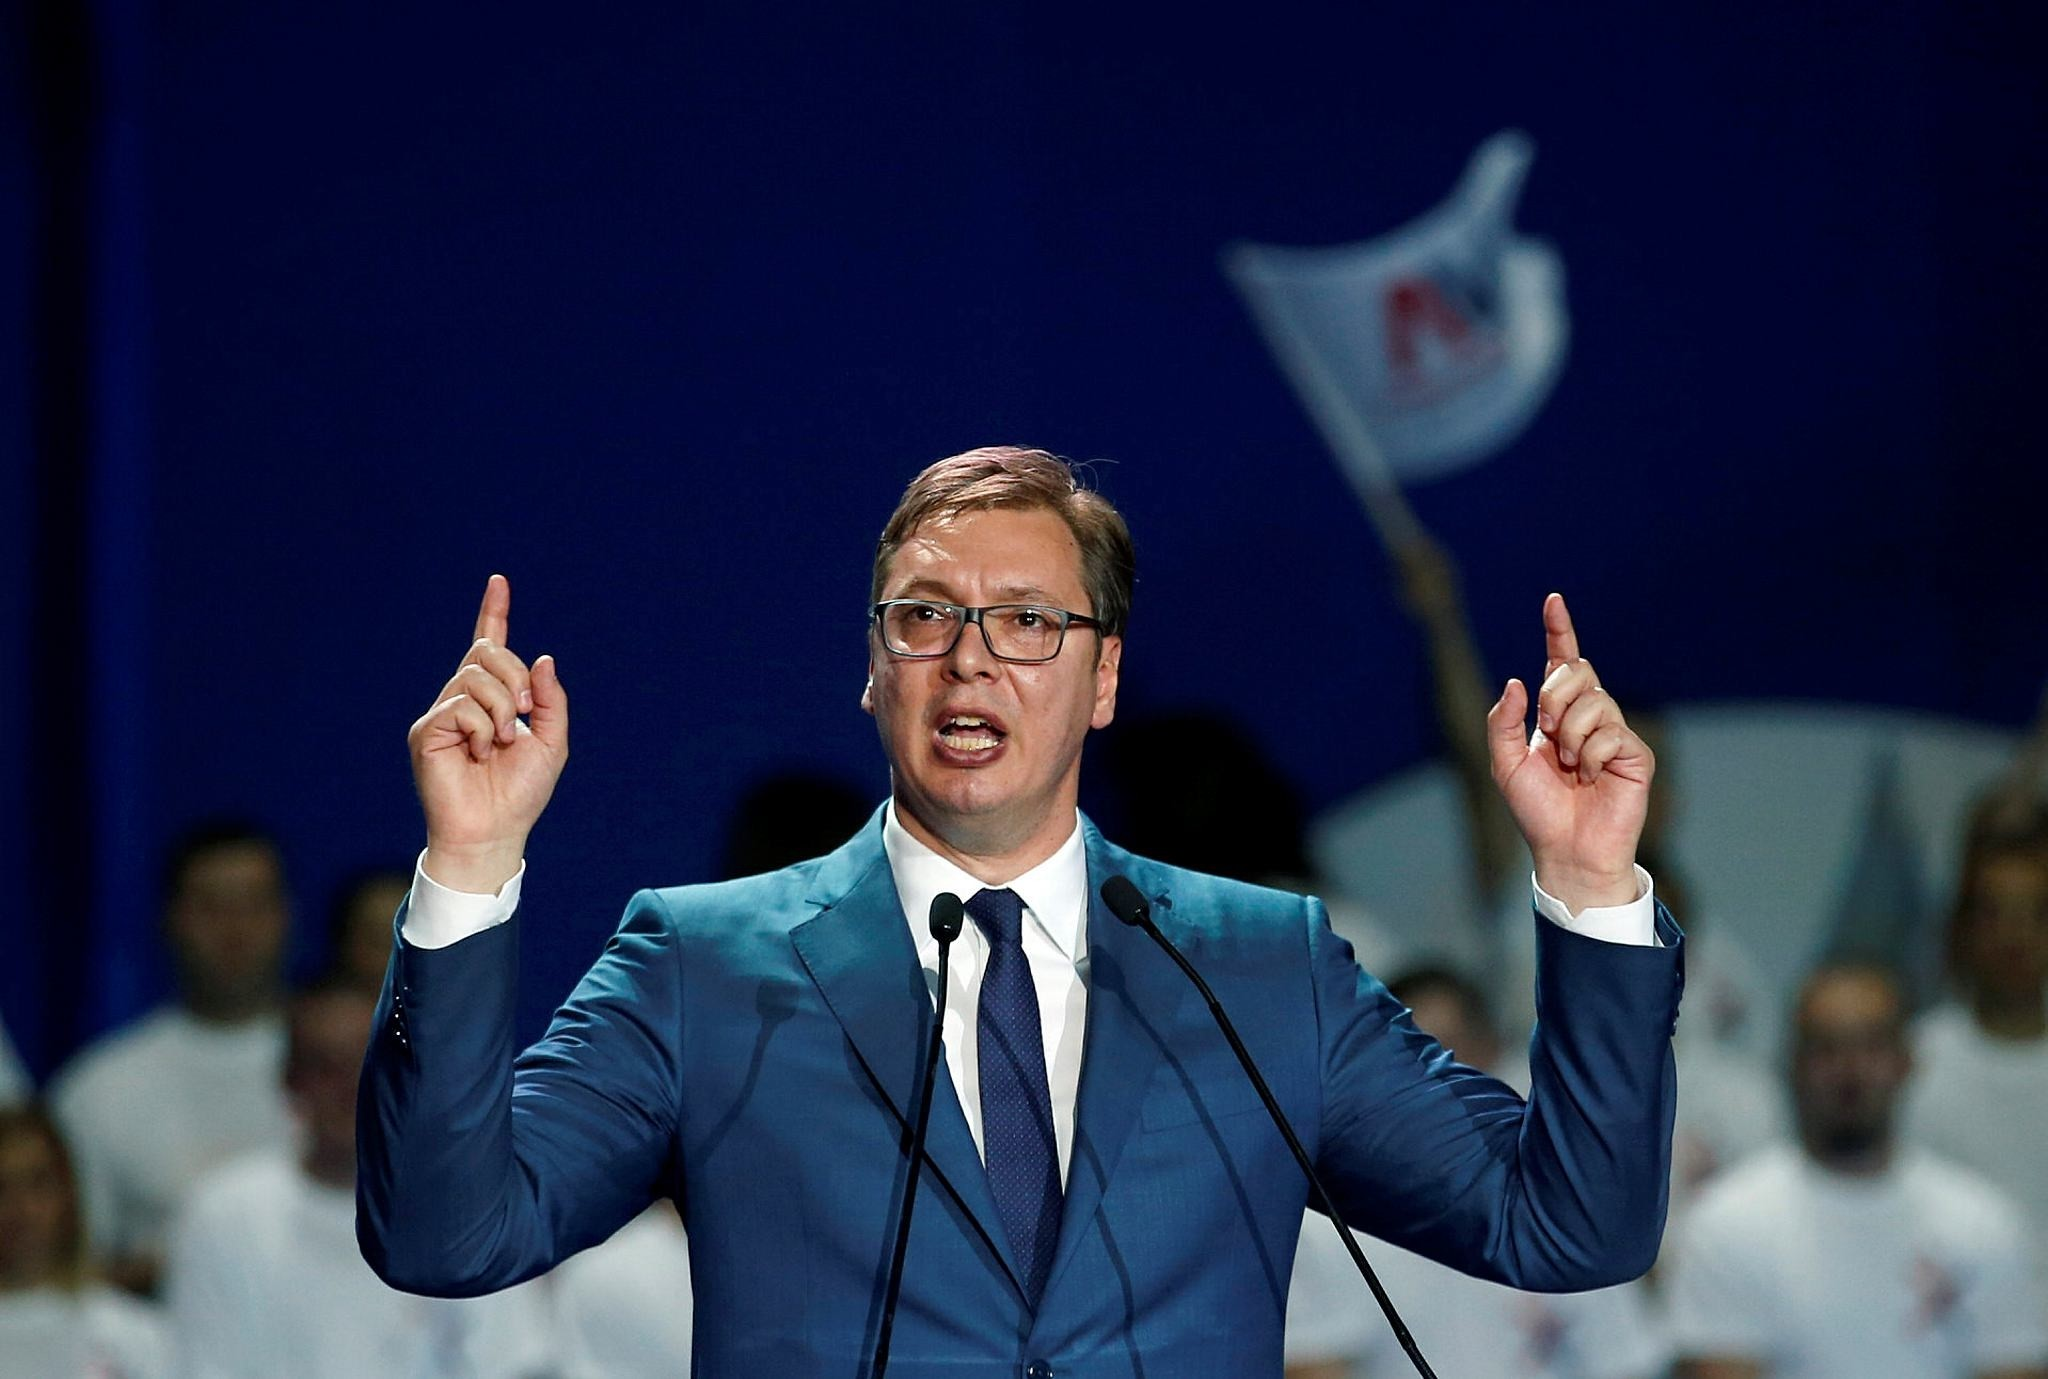 Current Serbian Prime Minister and presidential candidate Aleksandar Vucic speaks during a pre-election rally, in Belgrade, Serbia, Friday, March 24, 2017. (AP Photo)